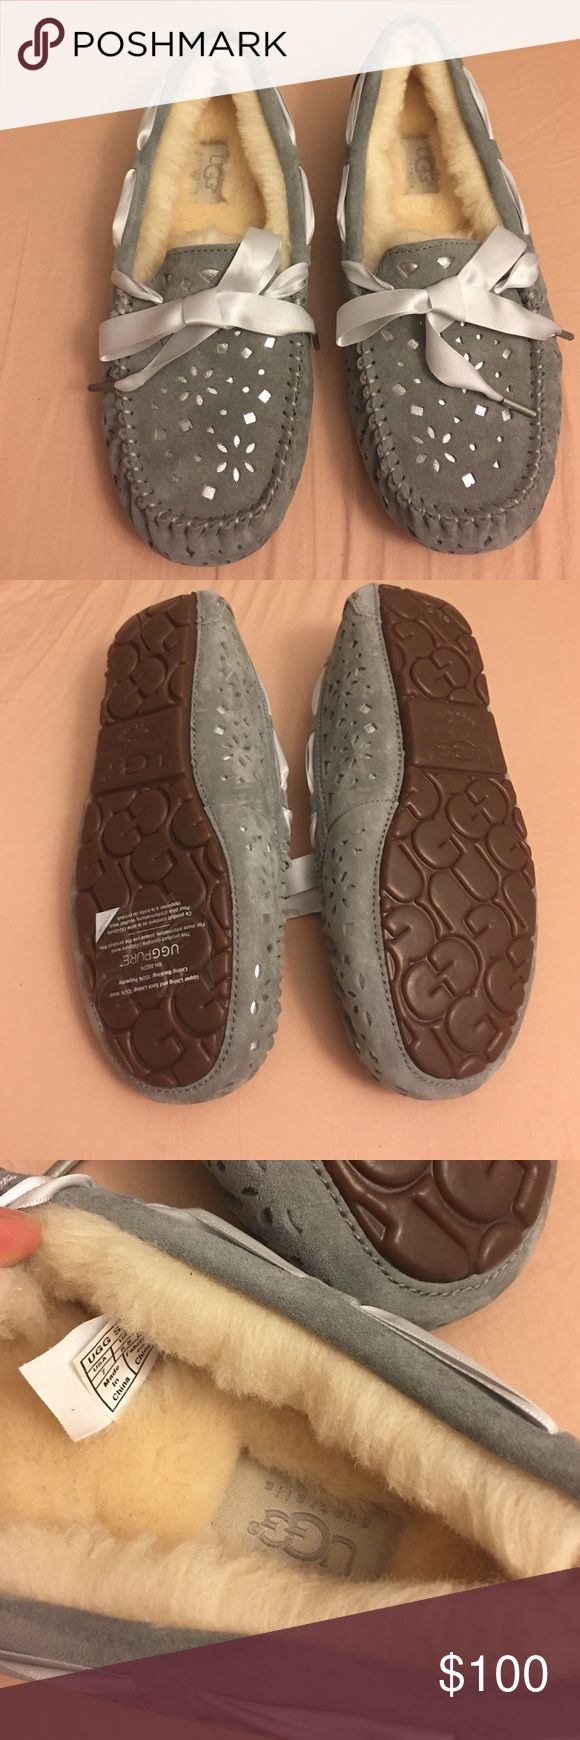 New UGG Australia moccasin These moccasins are warm and fuzzy for cool fall days! UGG Shoes Moccasins